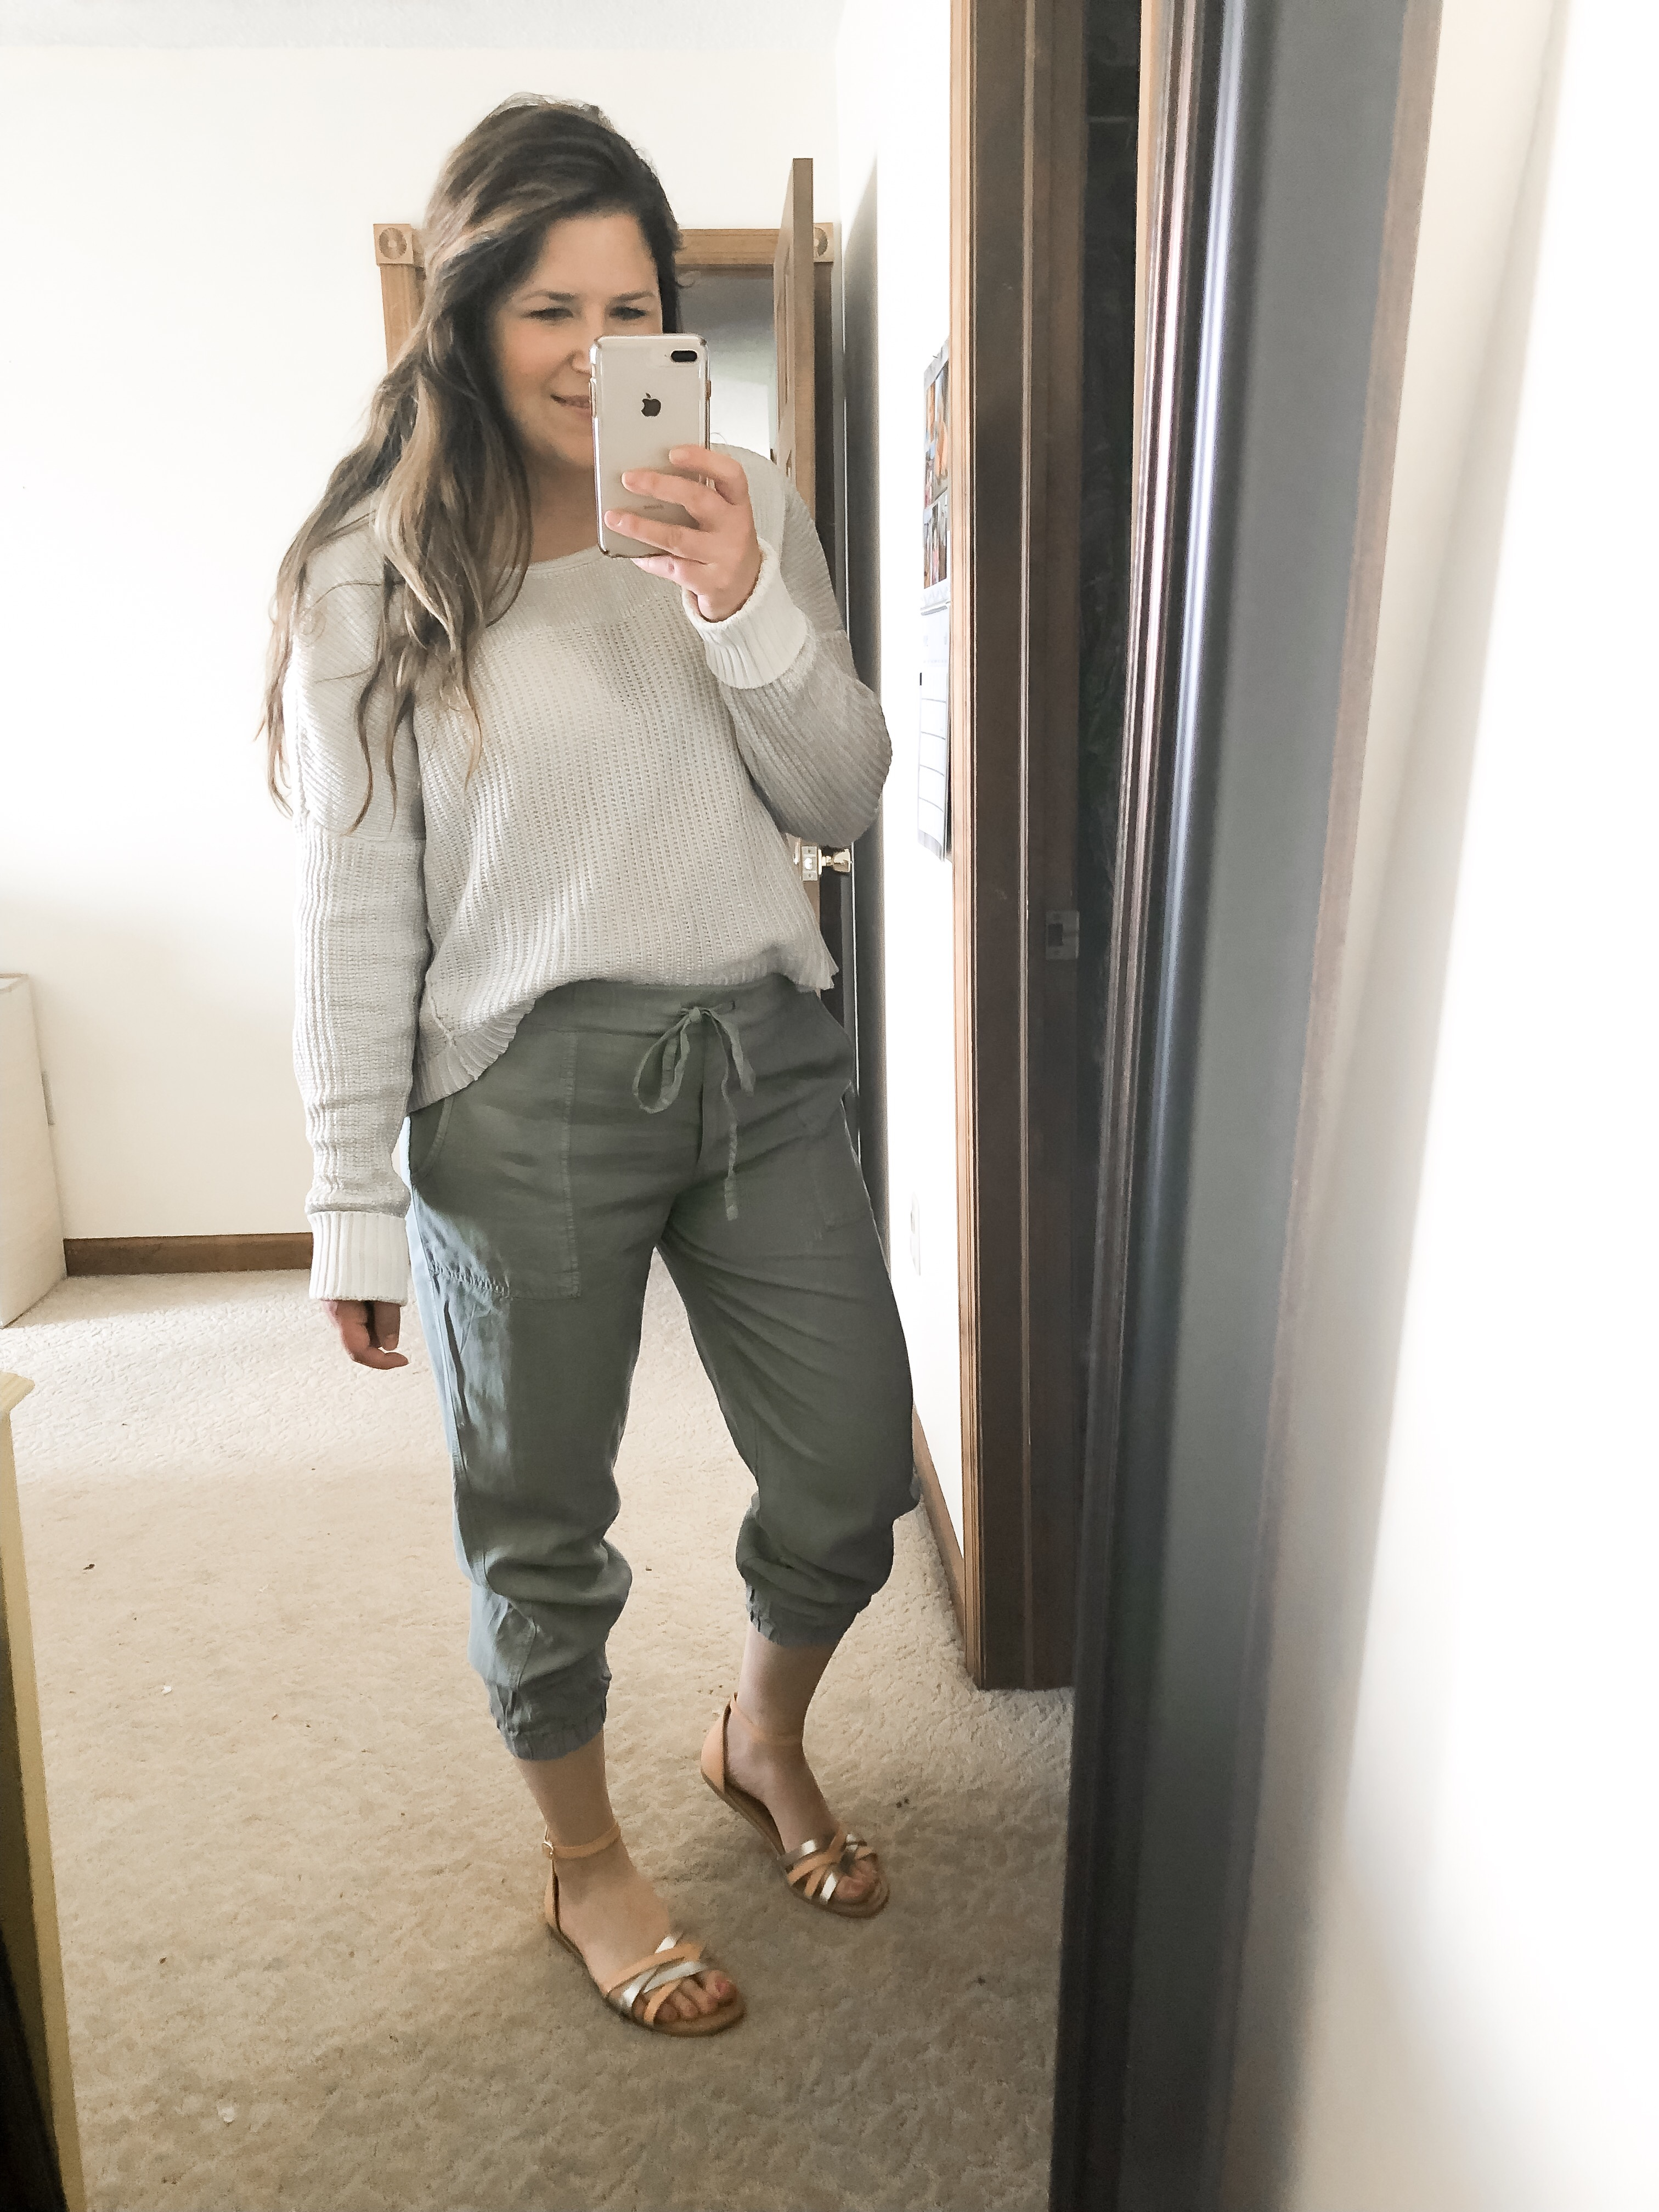 Casual spring linen joggers outfit with sweater